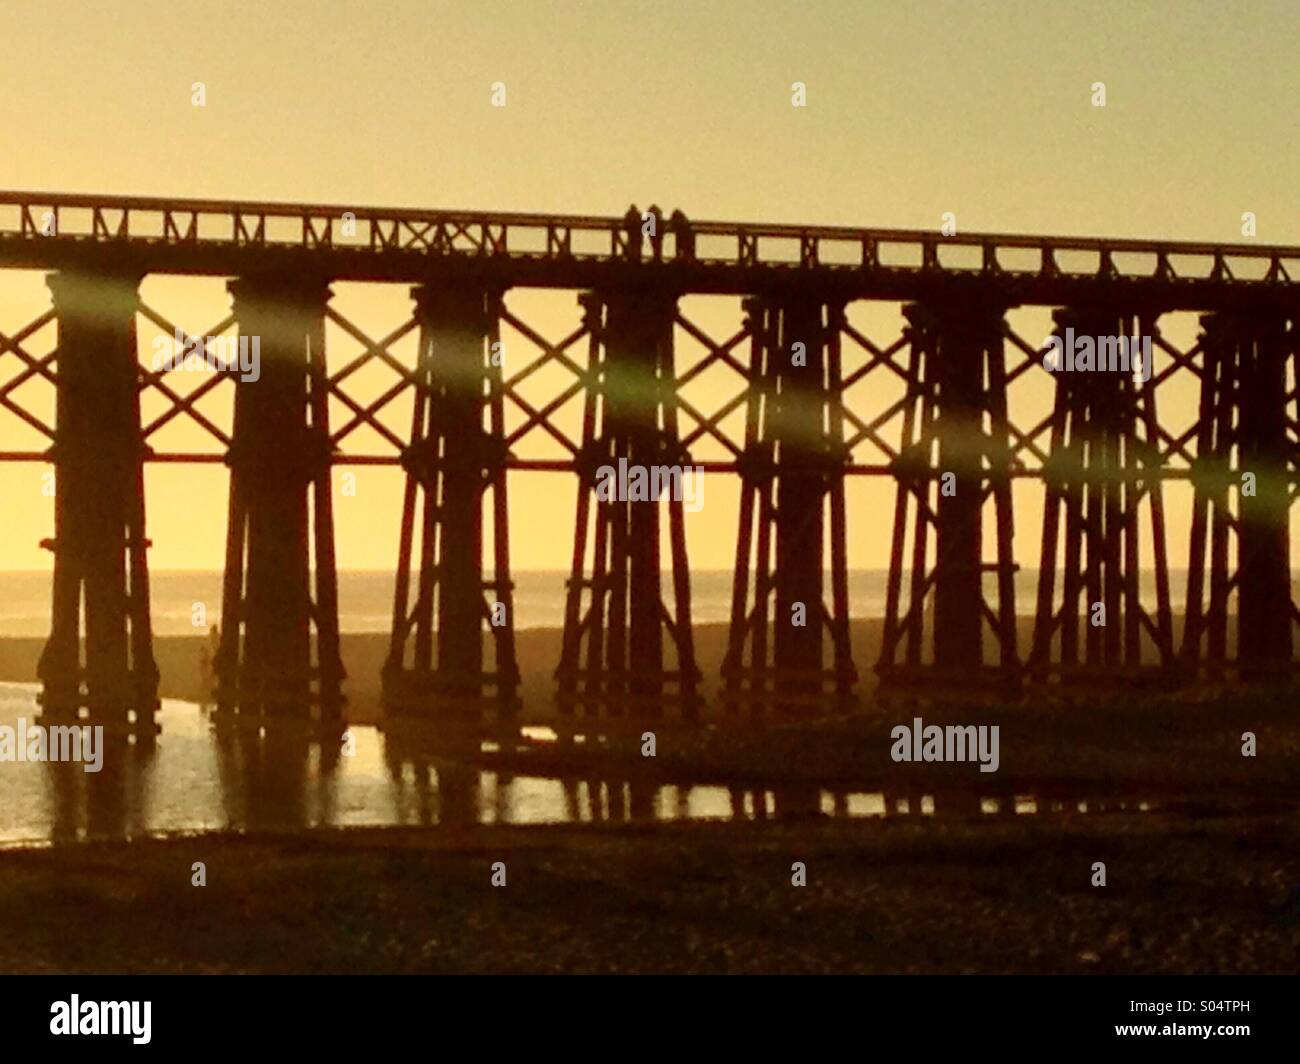 Pedestrian bridge in a Fort Bragg, CA - Stock Image